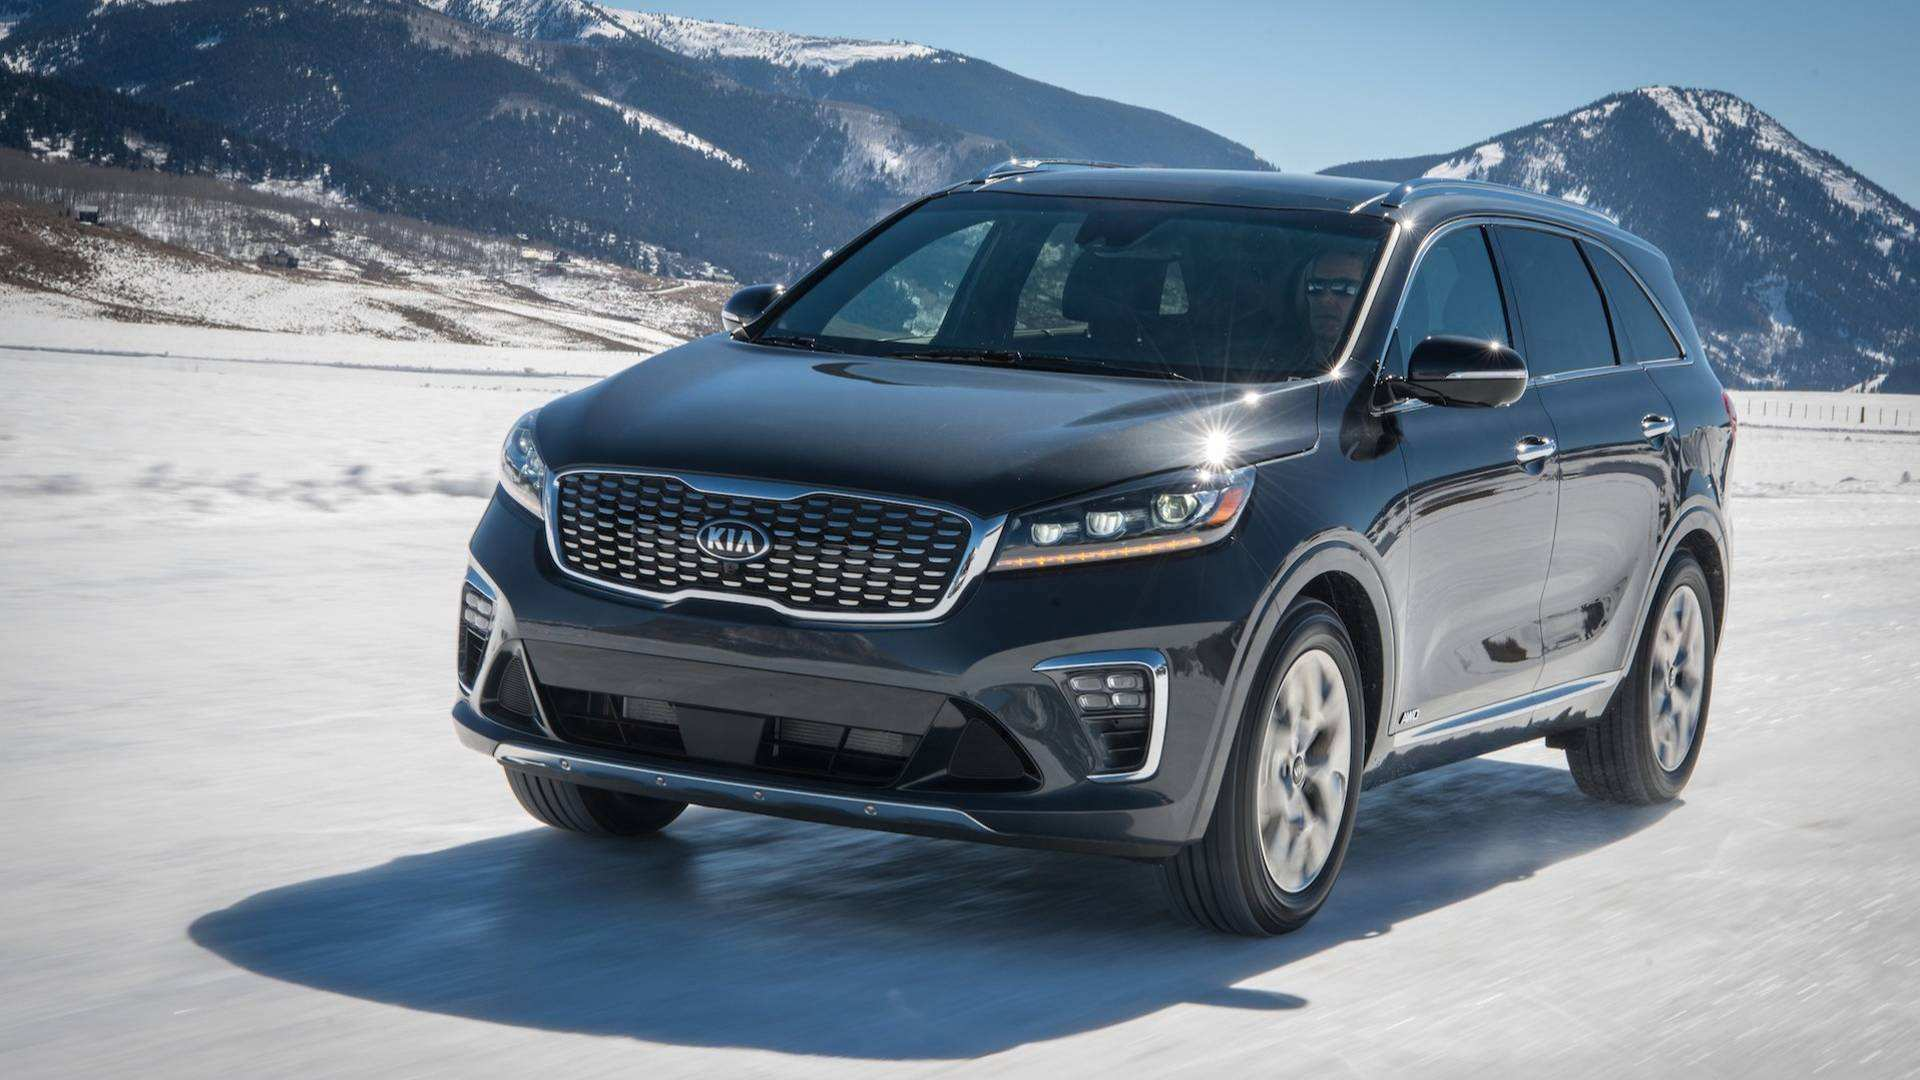 98 Gallery of New Kia Sorento 2019 Uk Specs Picture by New Kia Sorento 2019 Uk Specs